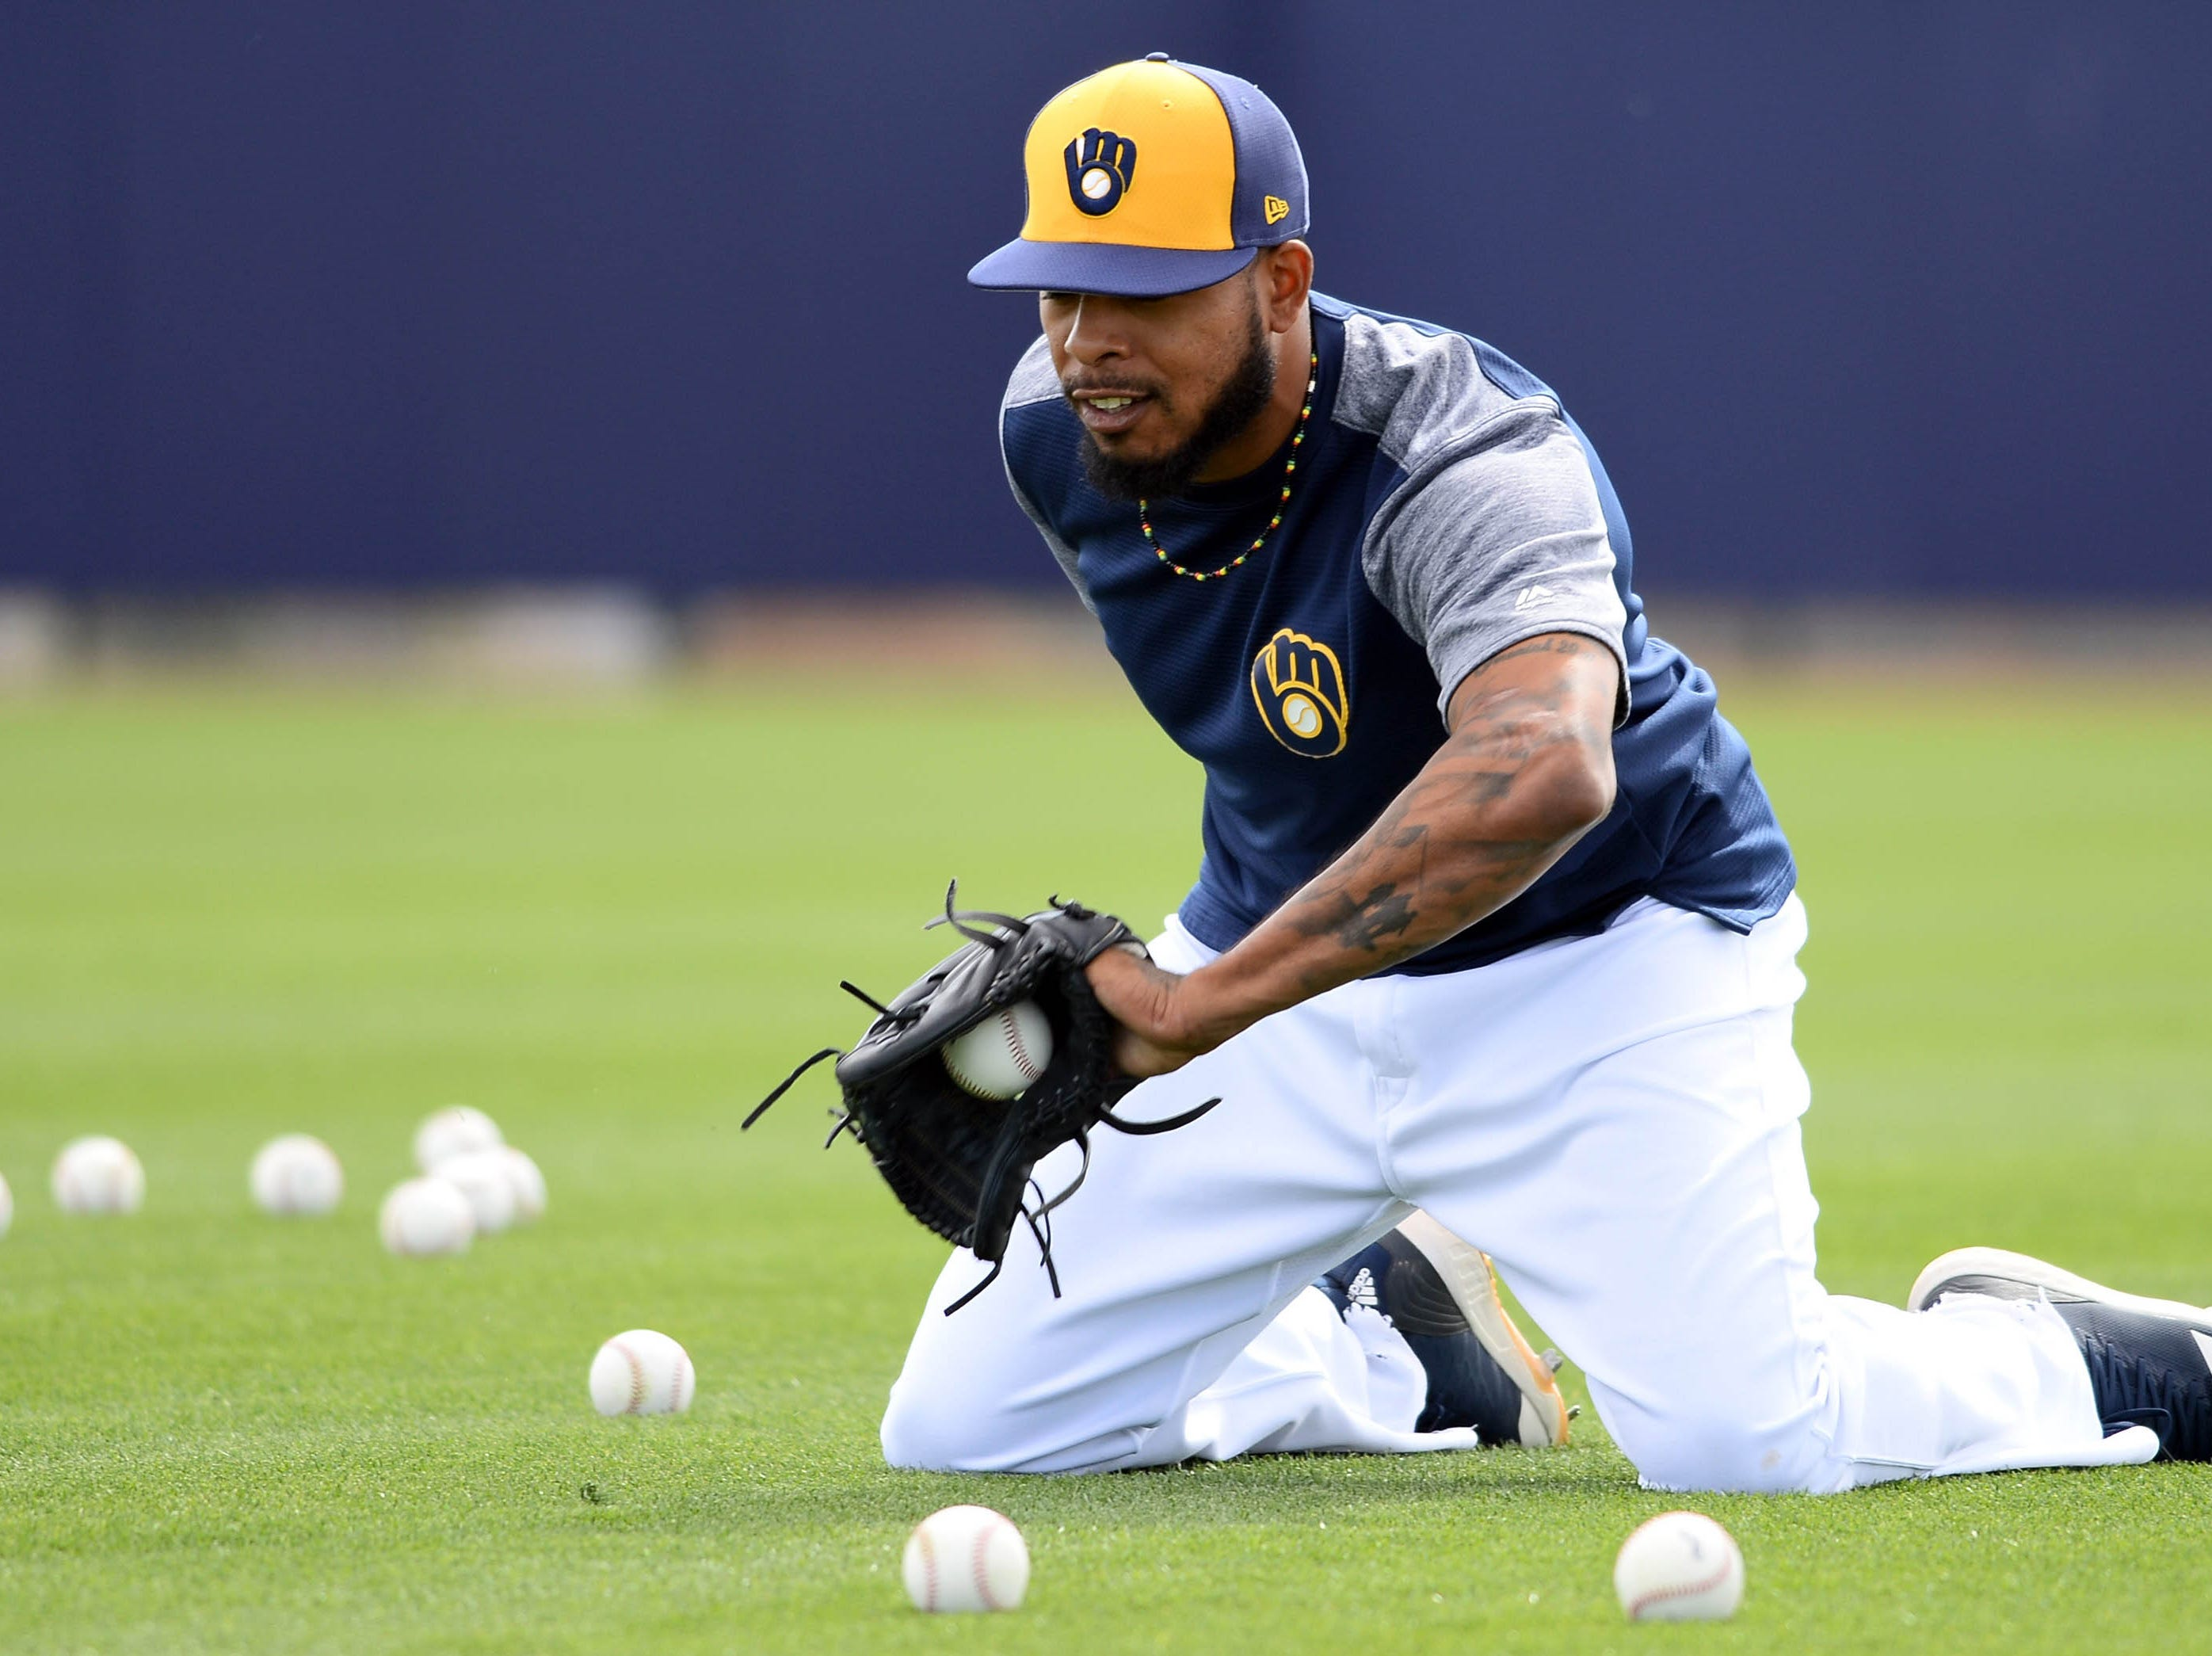 Reliever Jeremy Jeffress fields a ball while kneeling Saturday.